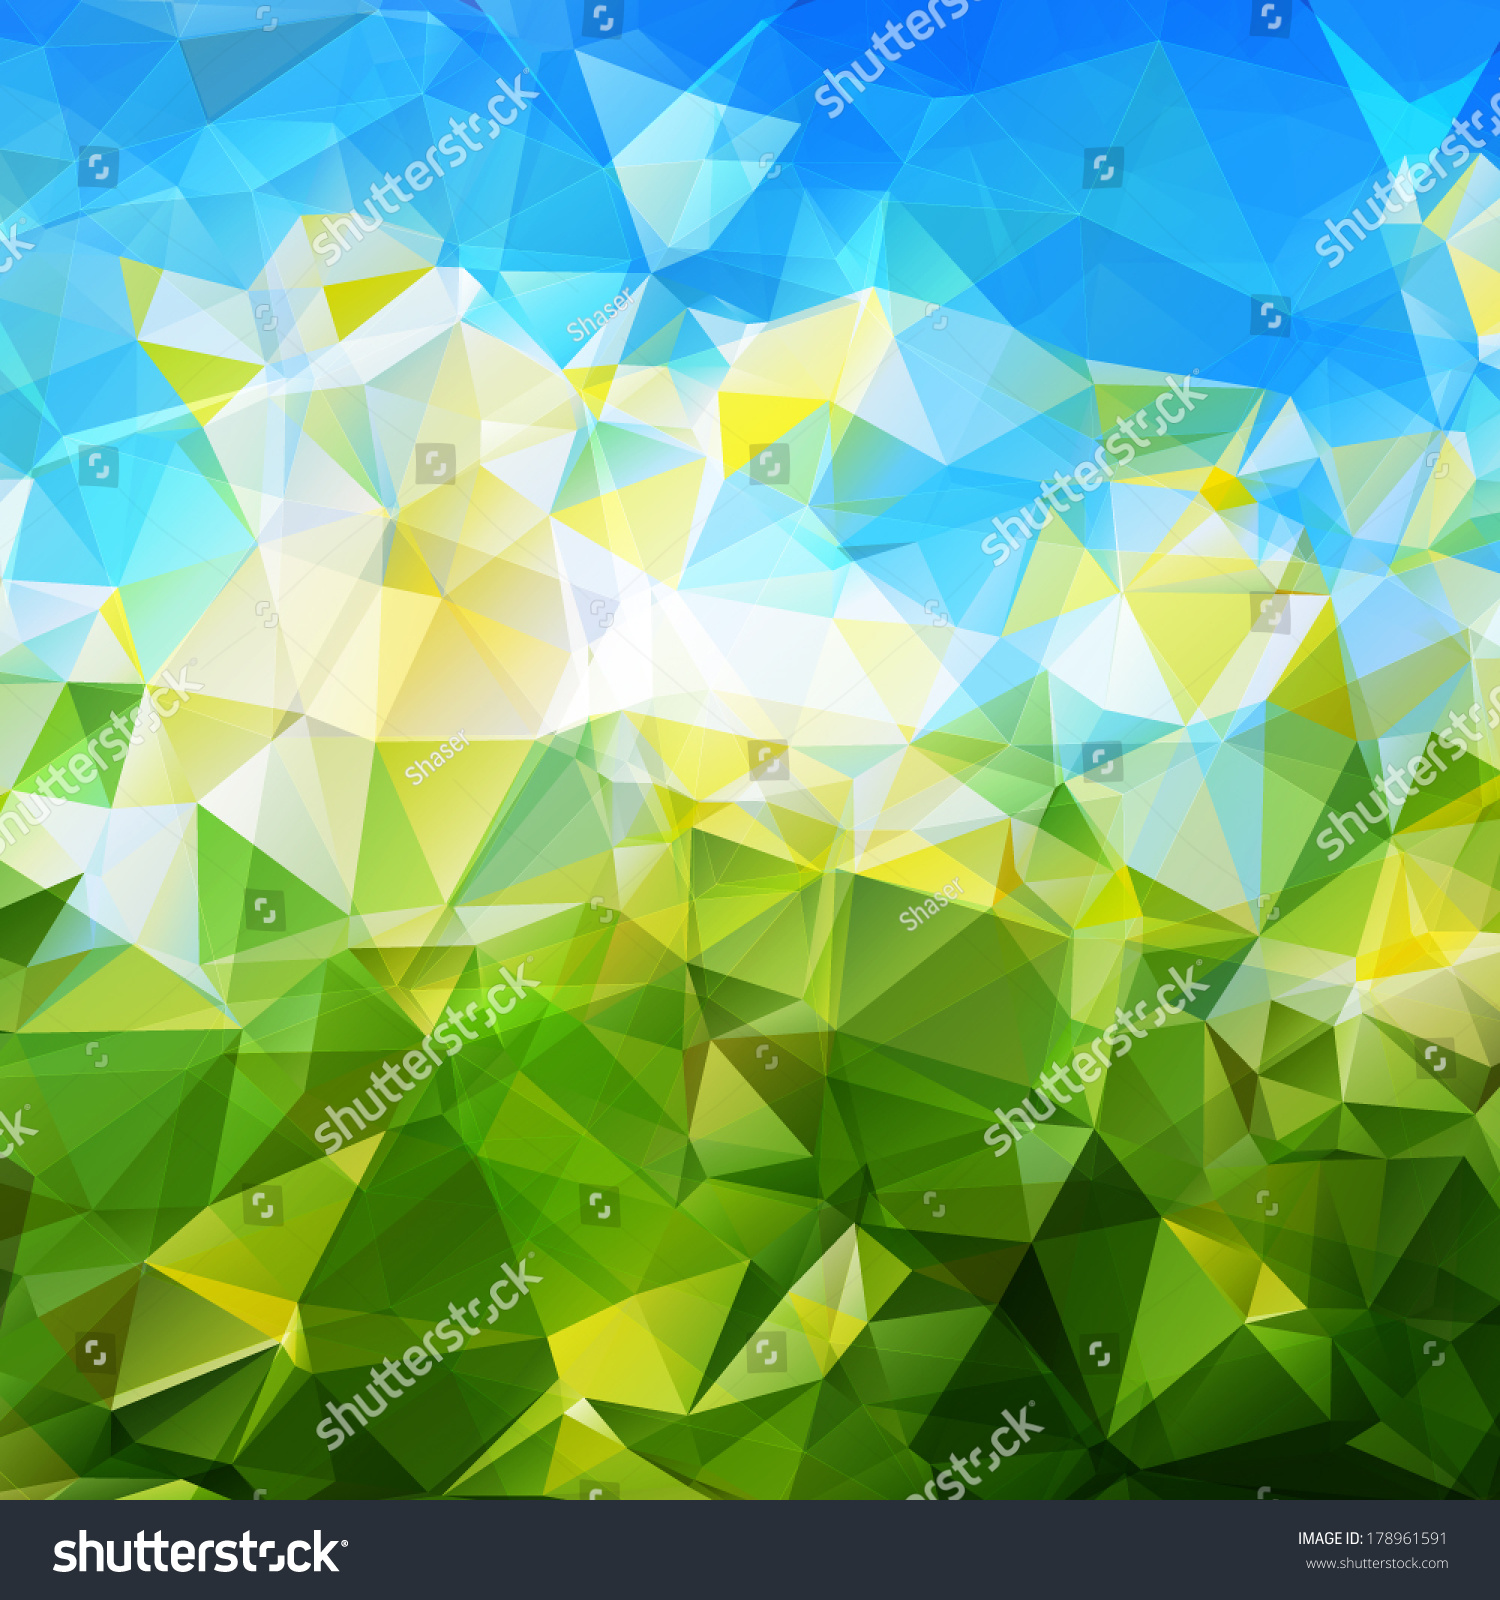 spring abstract background - photo #34